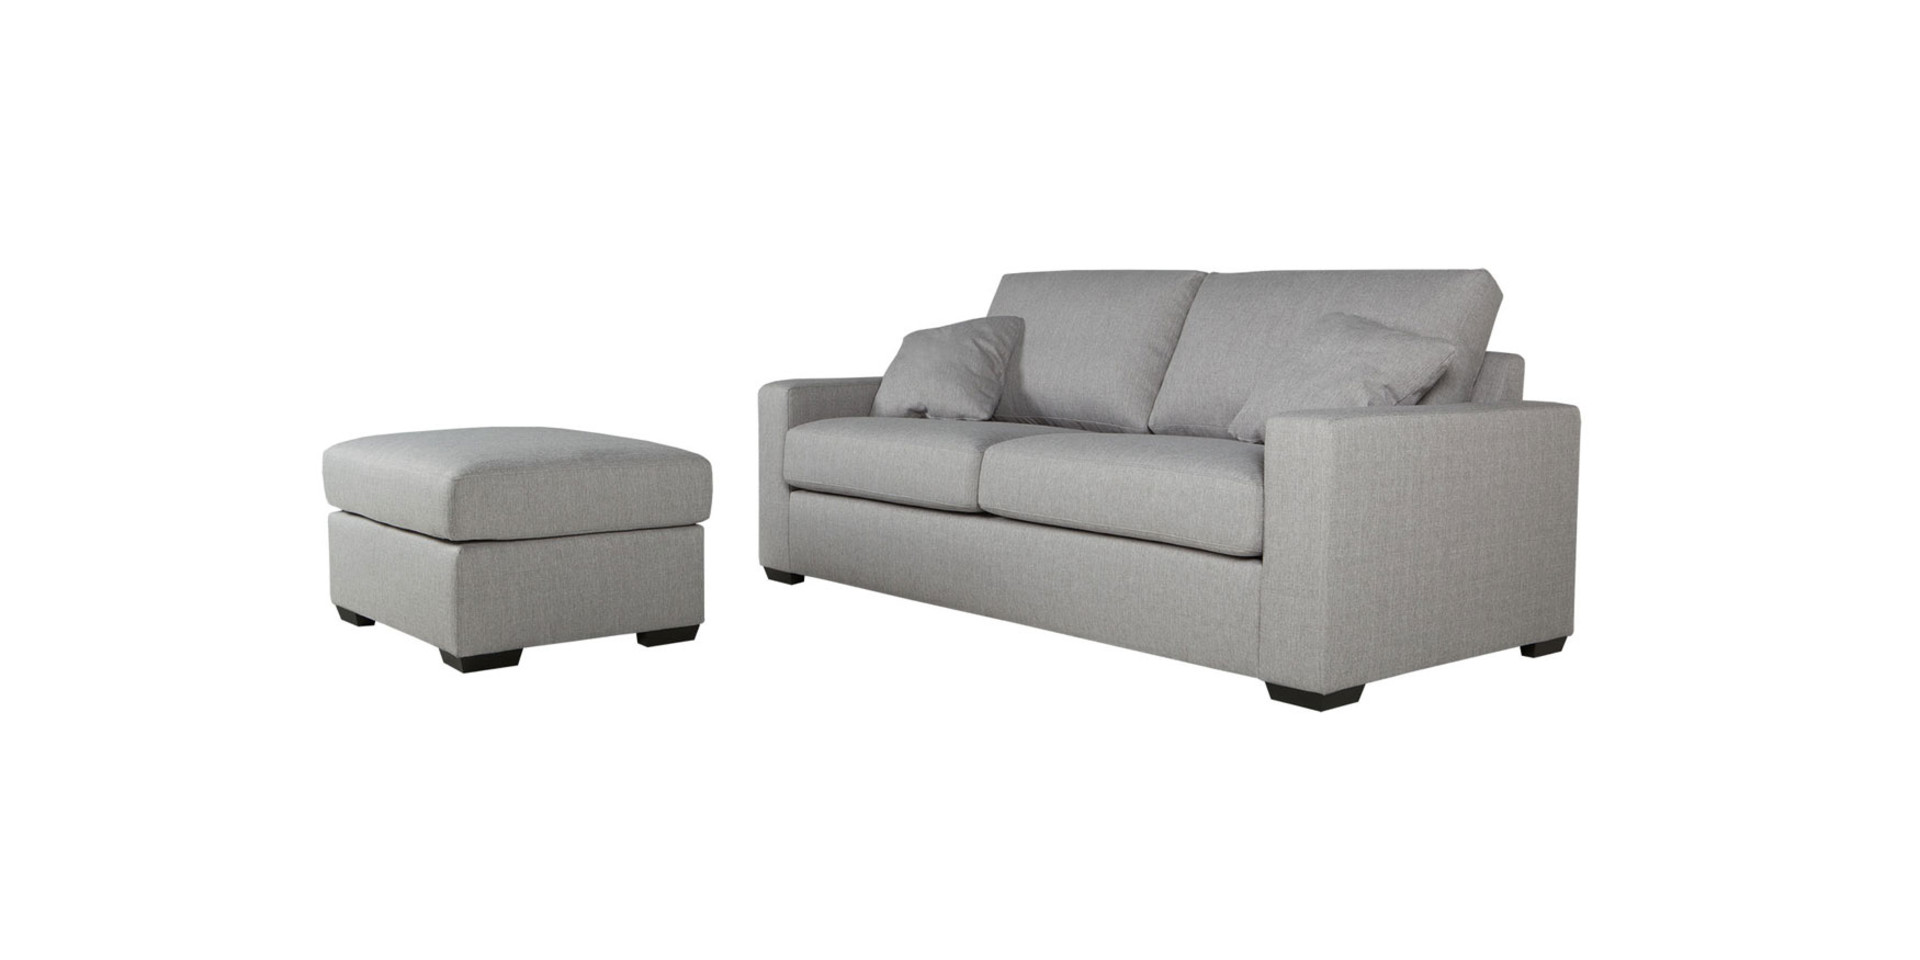 sits-boston-canape-pouf-3seater_footstool_cedros8_light_grey_3